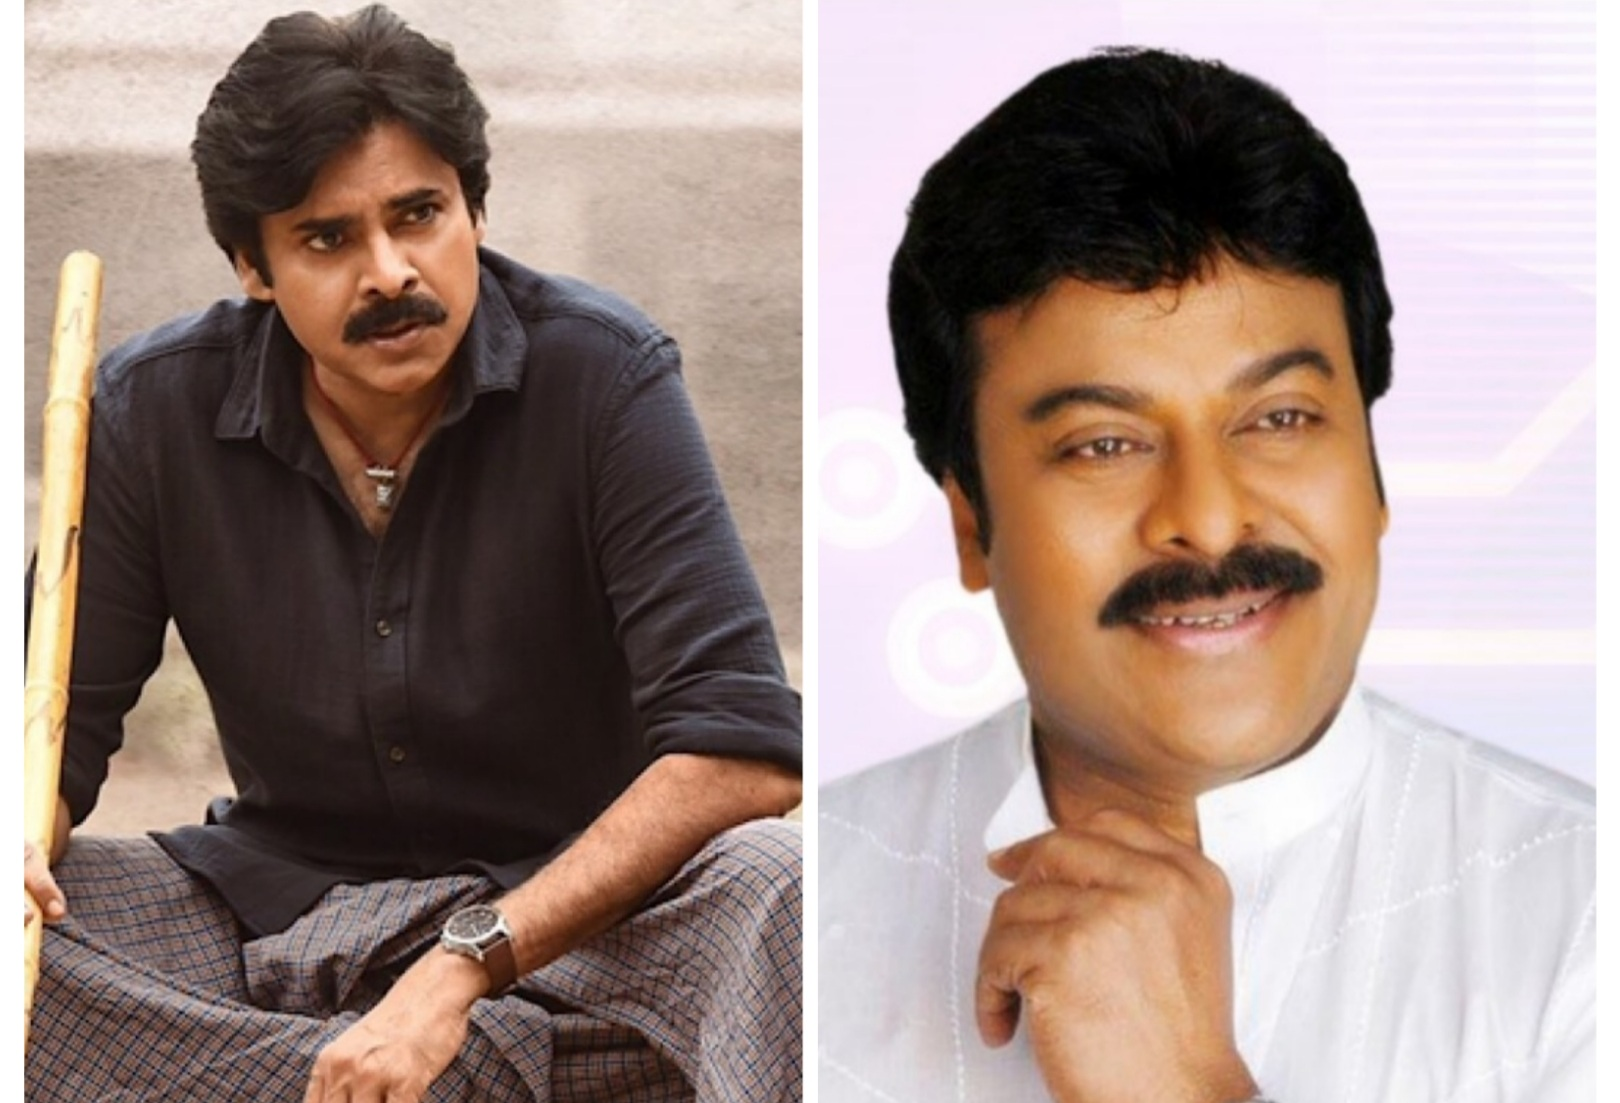 At this site in Hyderabad, Chiranjeevi and Pawan Kalyan were spotted together